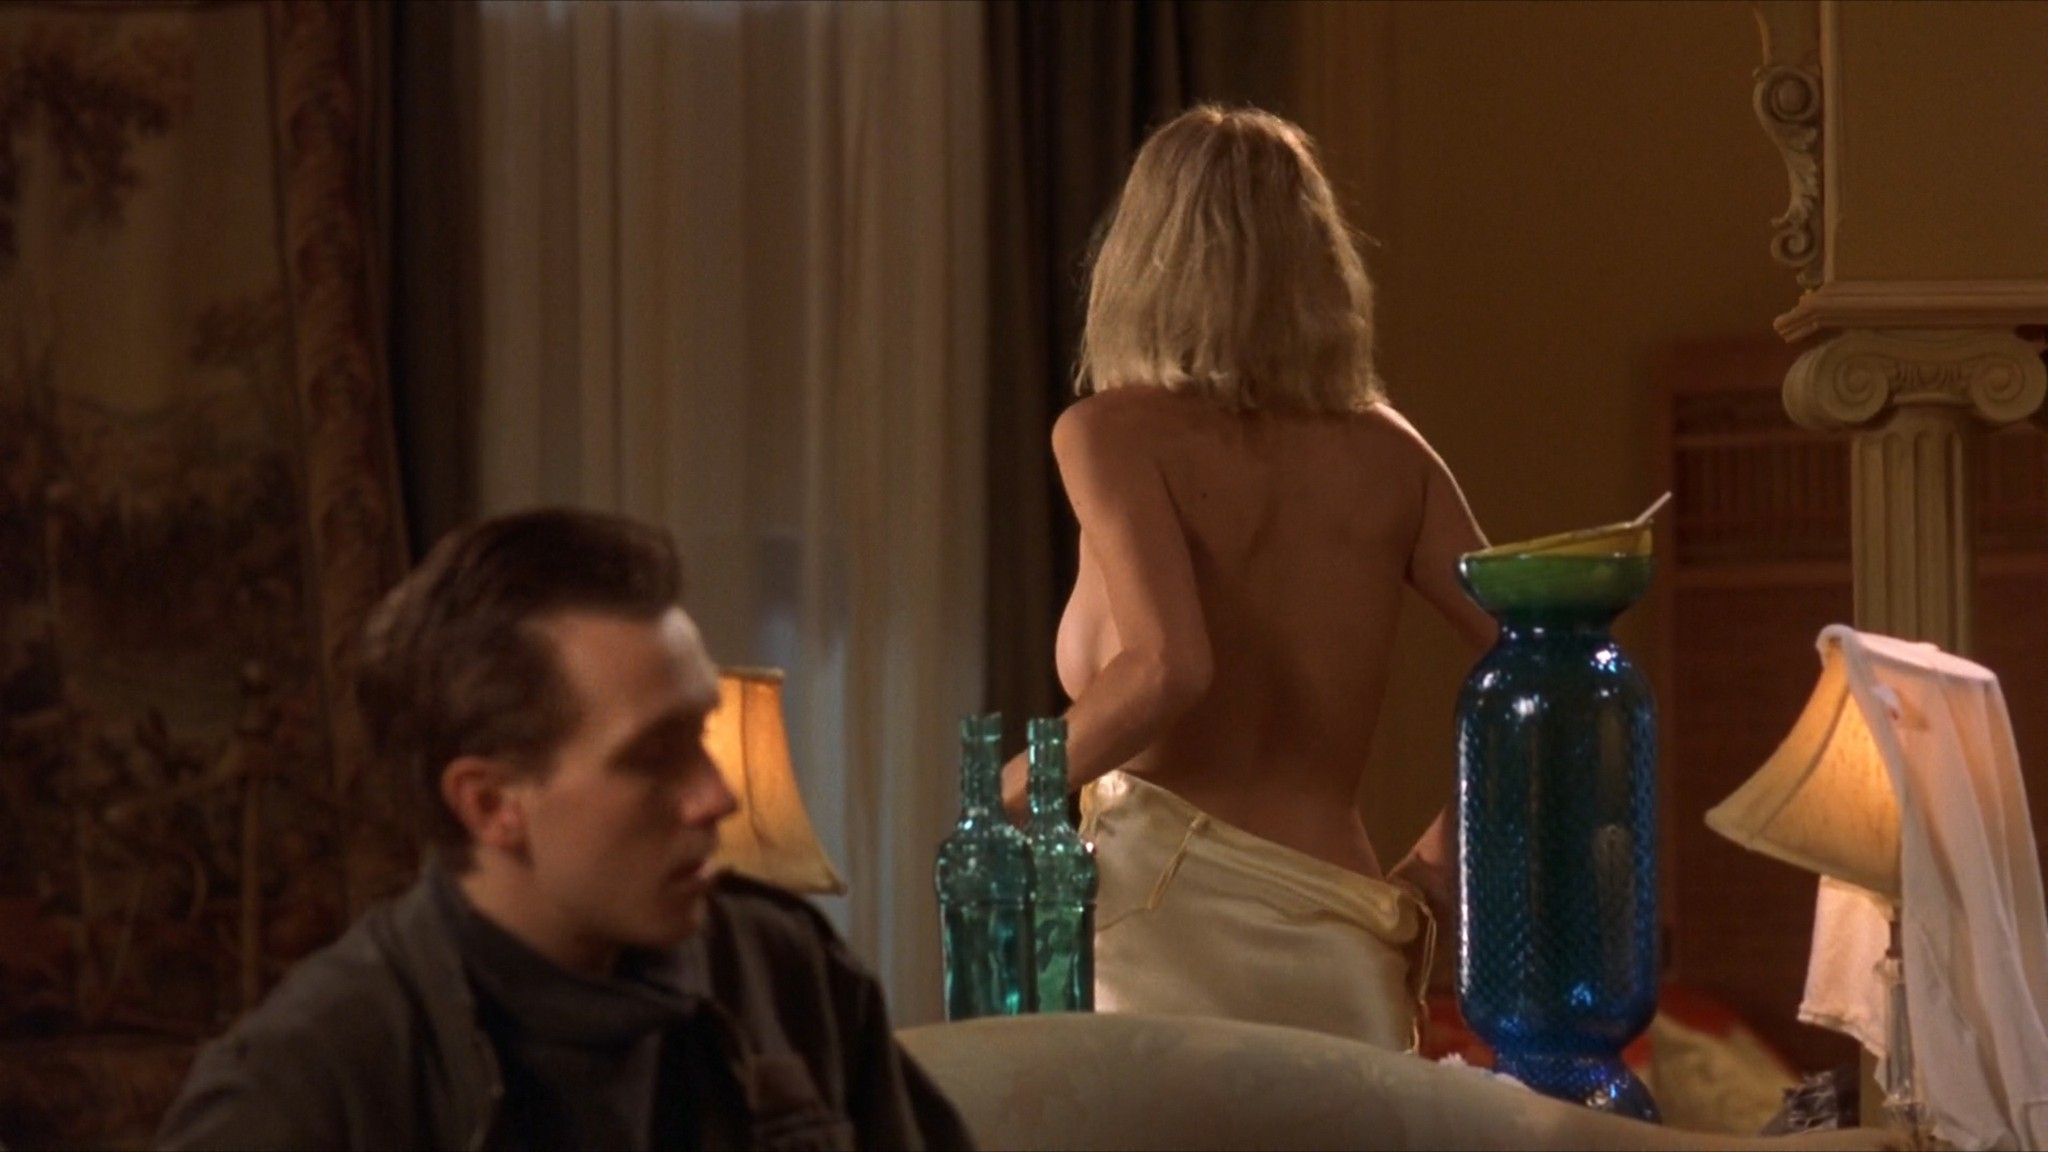 Erinn Bartlett nude topless Jennifer Morrison and other hot - 100 Women (2002) HD 1080p Web (8)